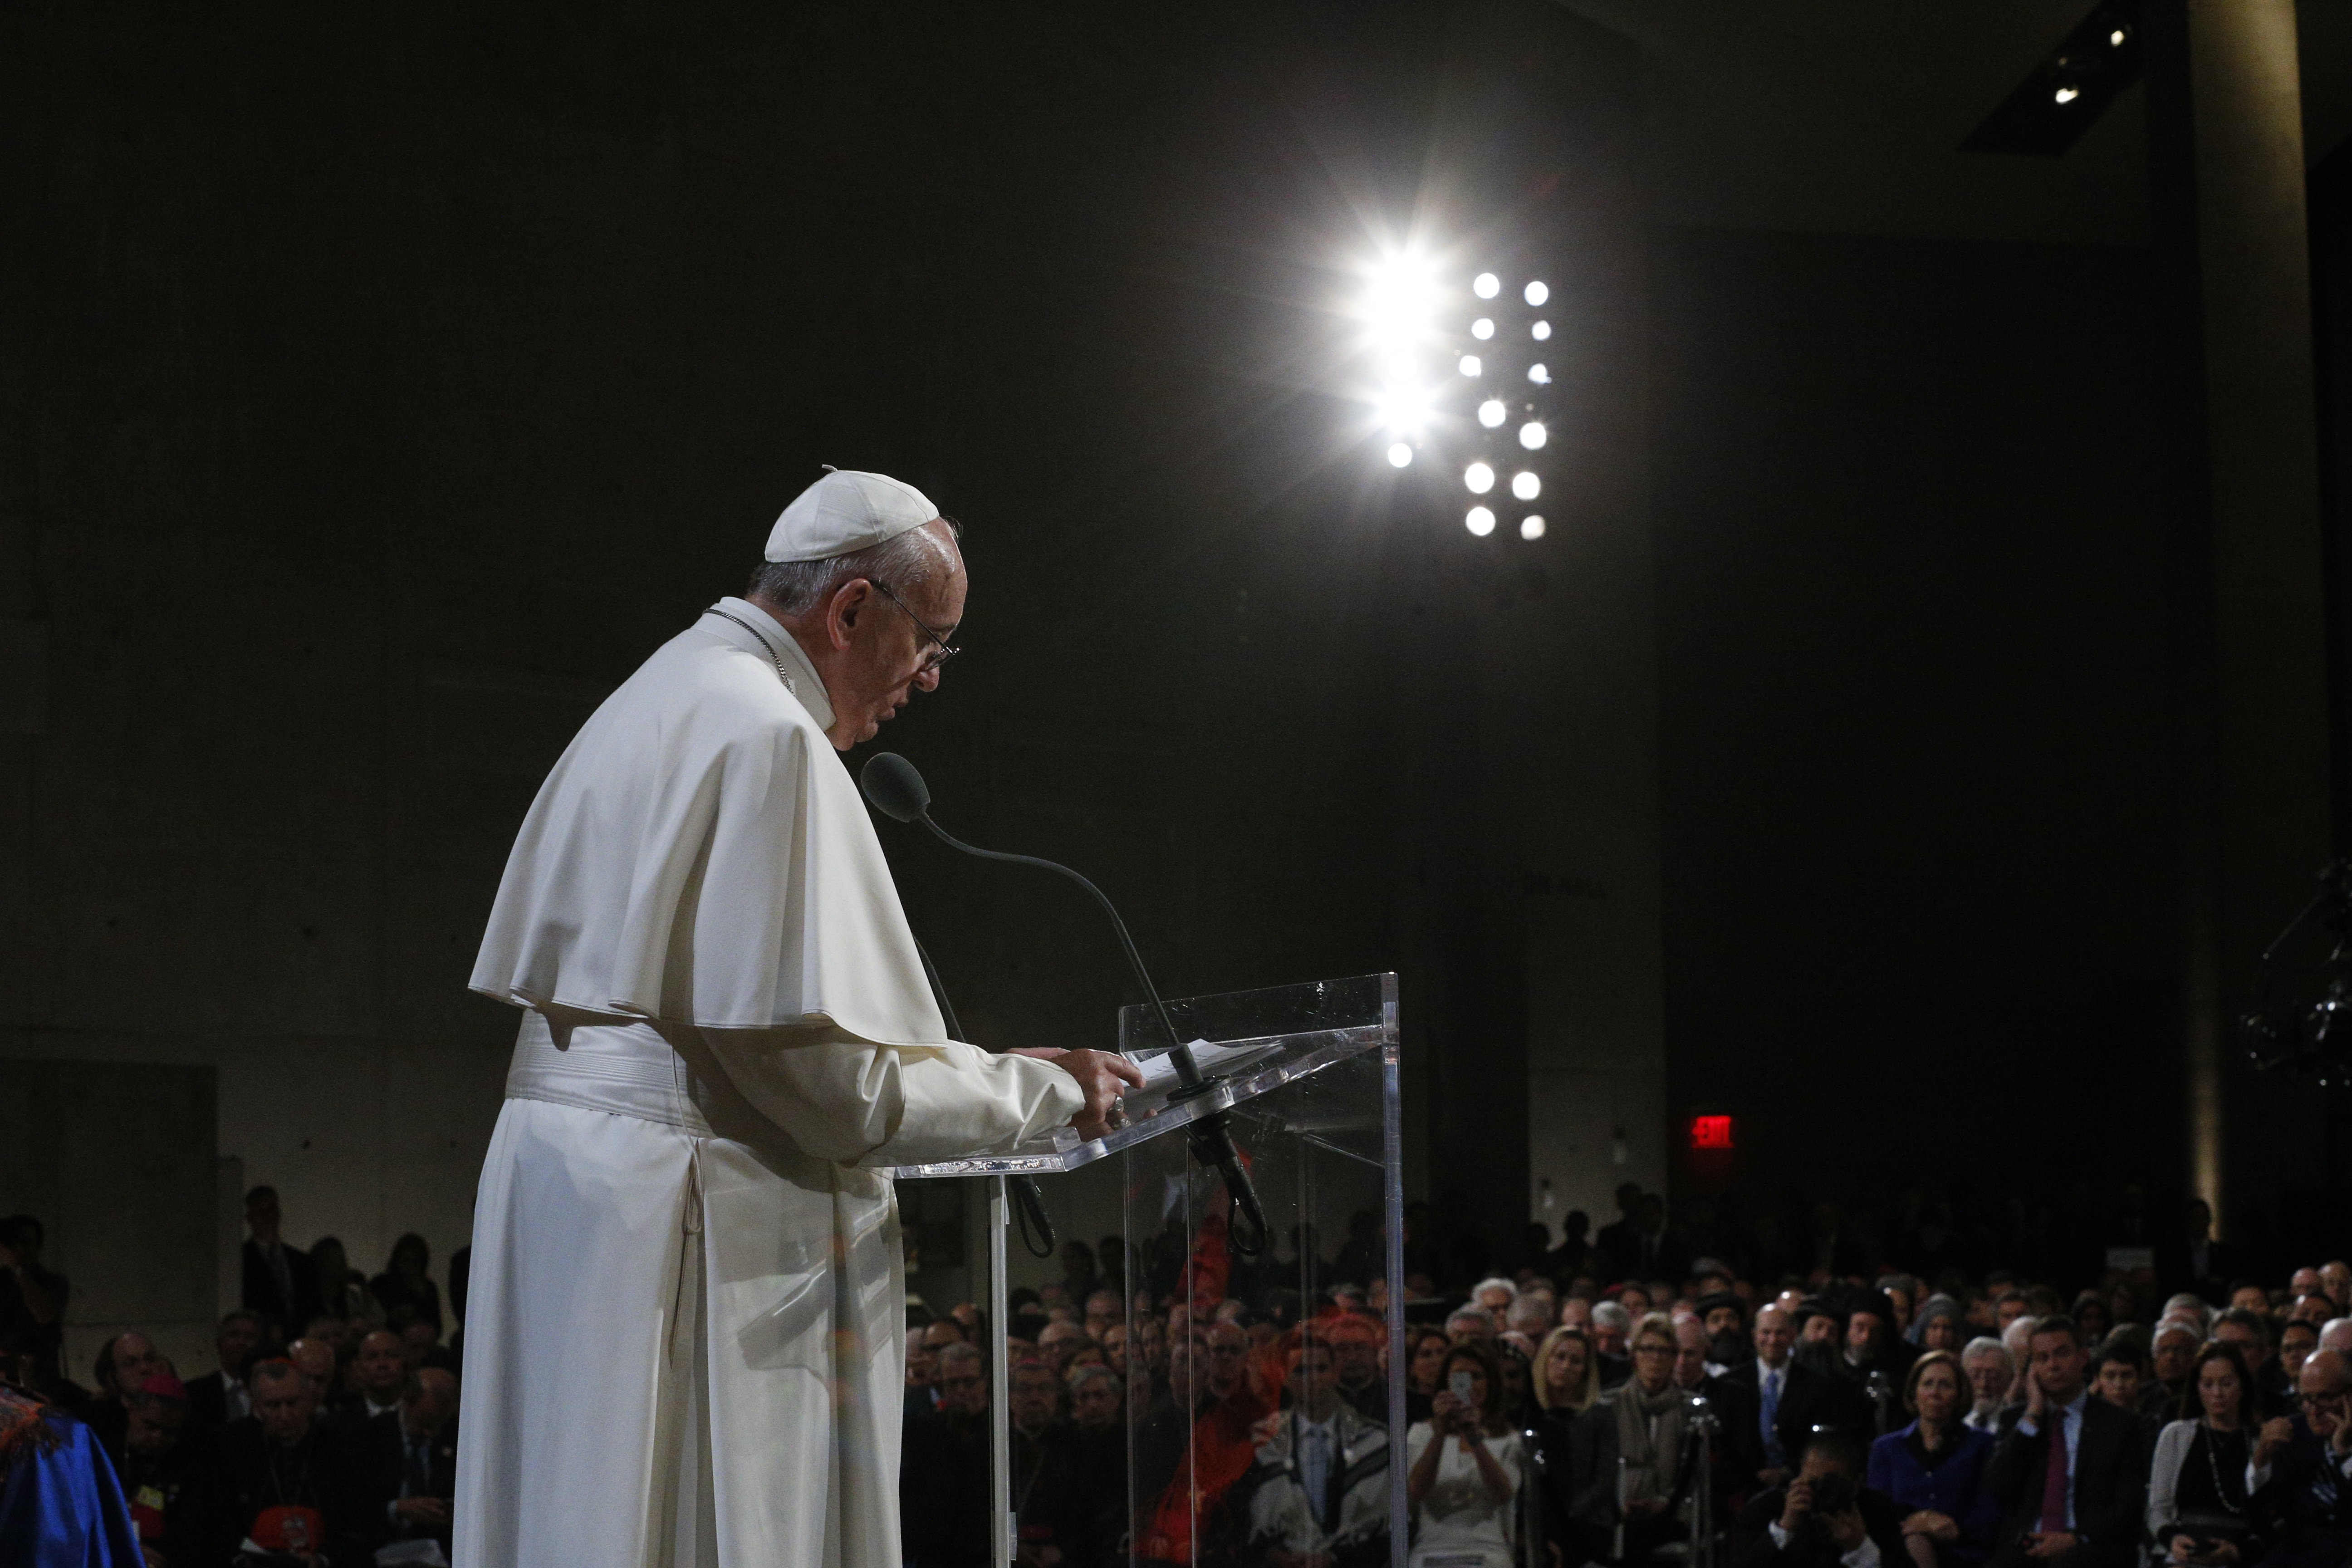 Pope Francis gathers with representatives of religious communities in Foundation Hall at ground zero 9/11 Memorial and Museum in New York